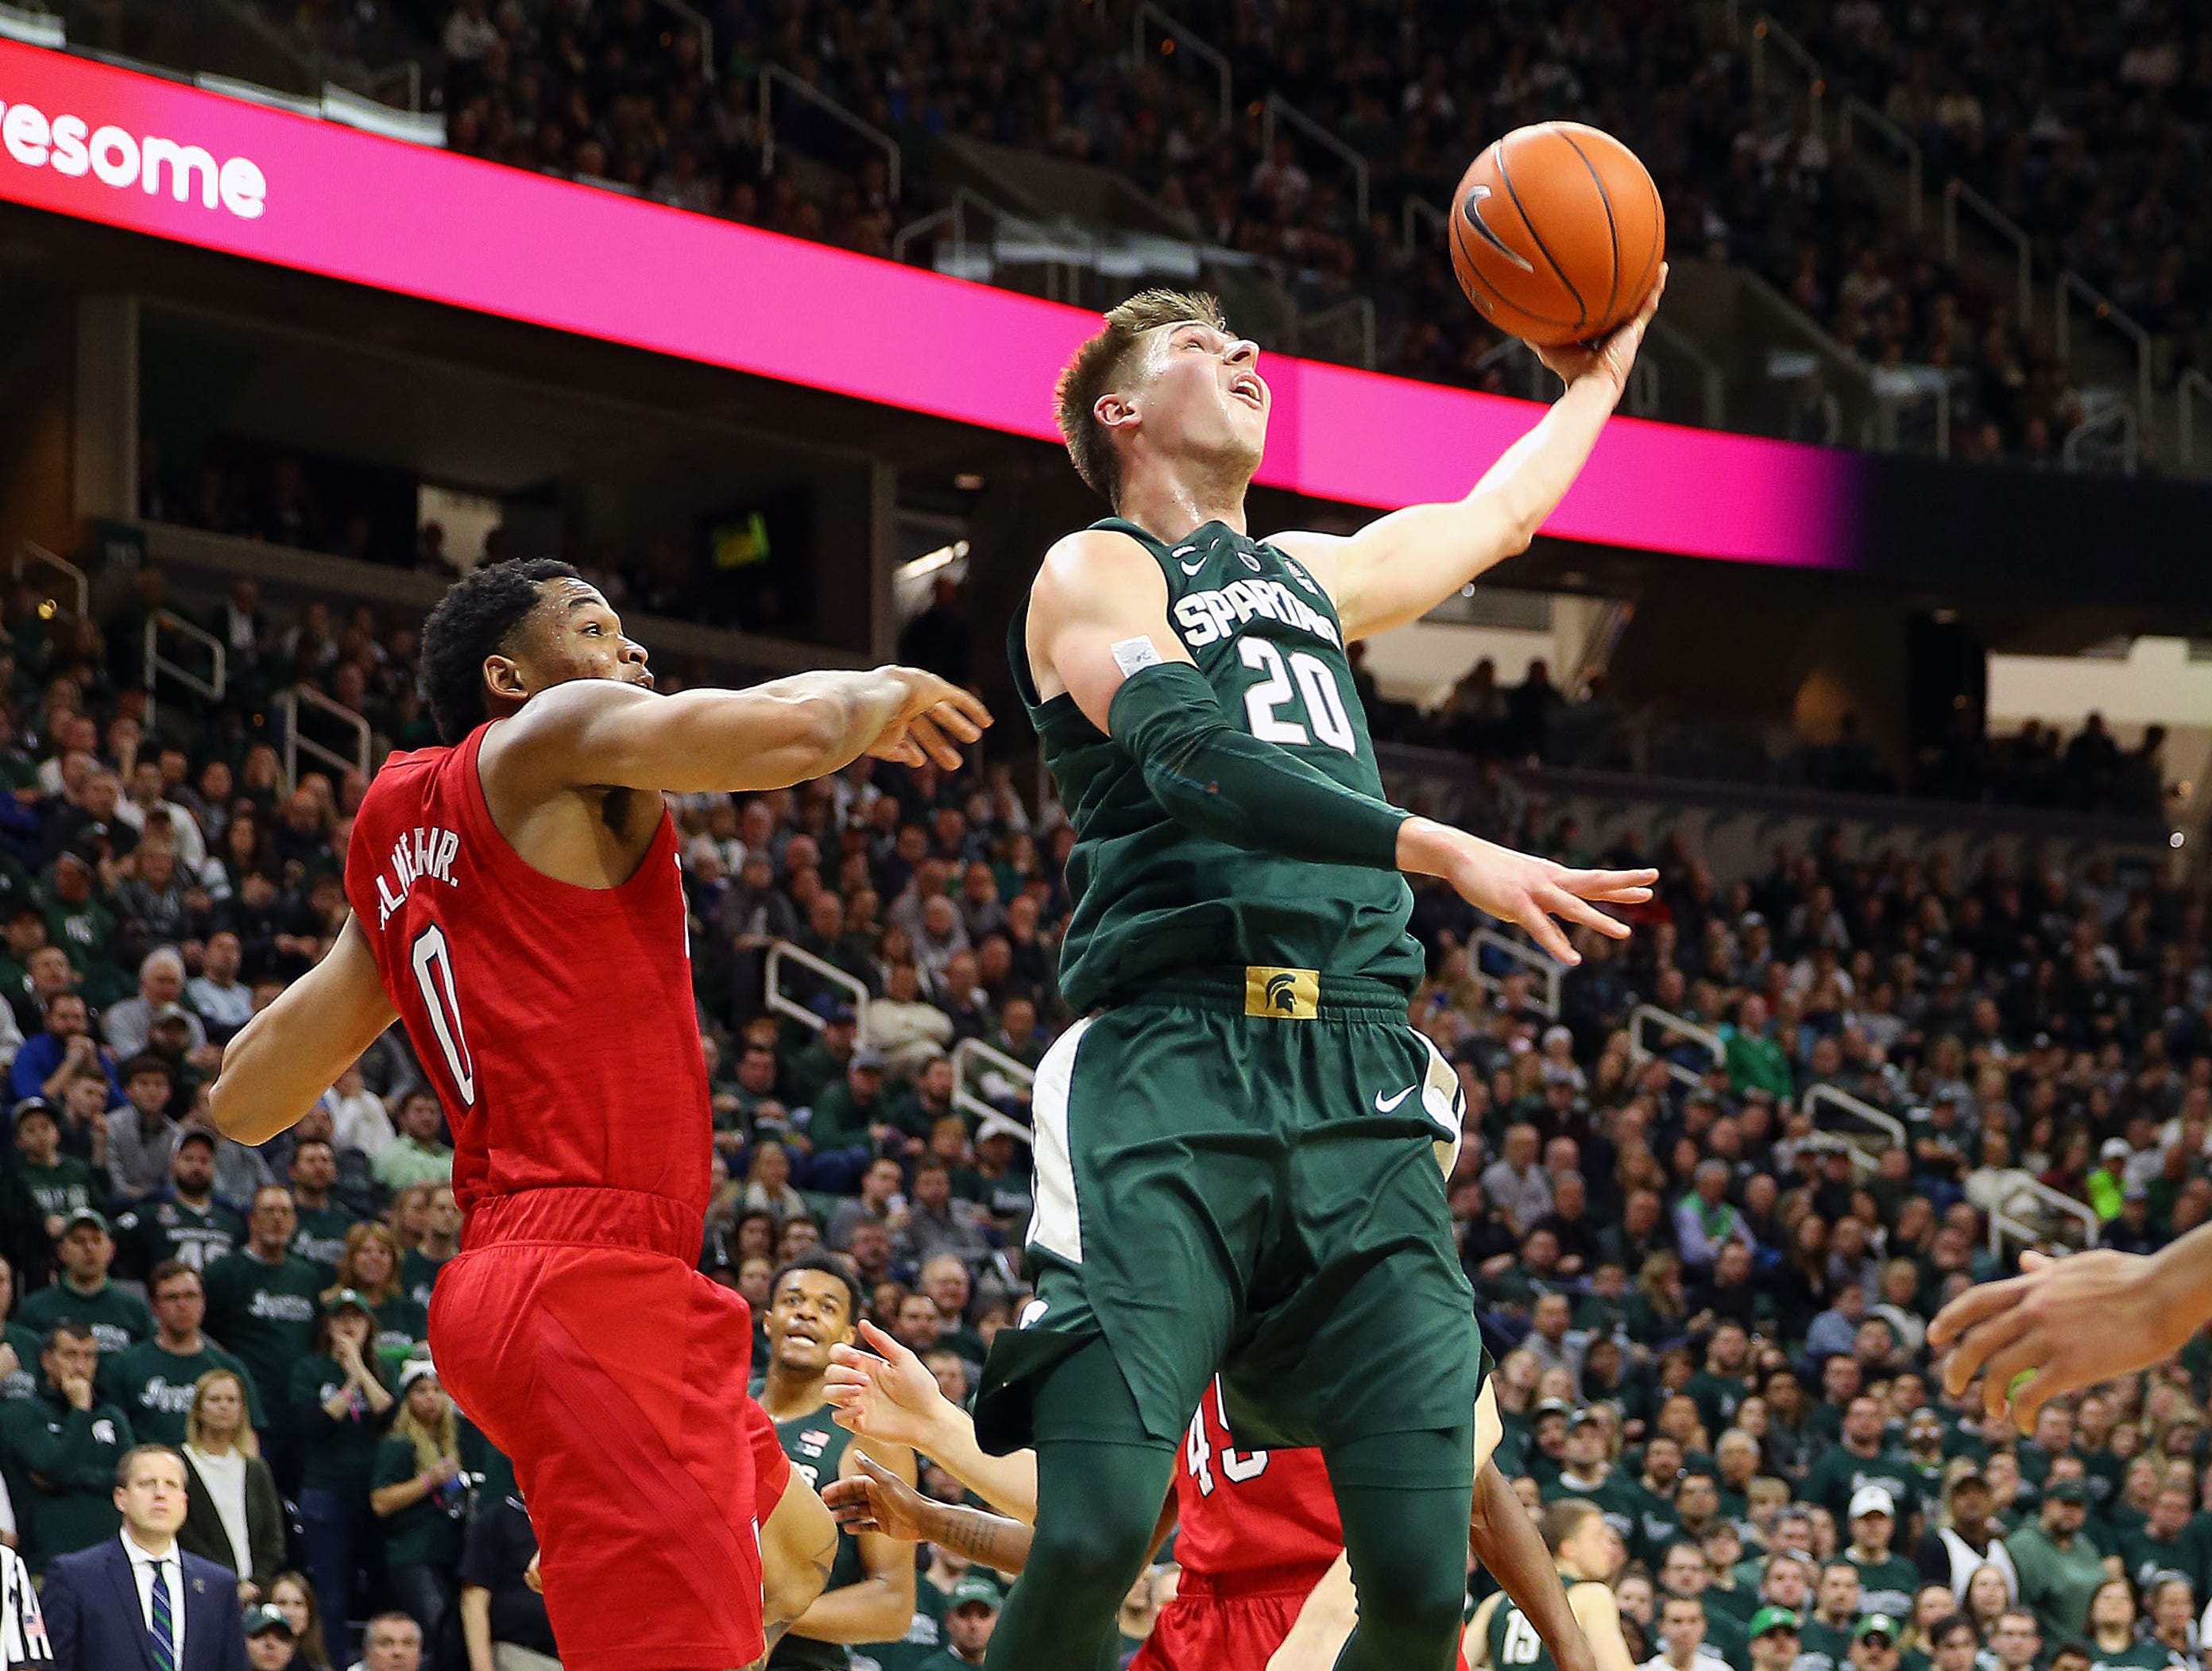 Mar 5, 2019; East Lansing, MI, USA; Michigan State Spartans guard Matt McQuaid (20) lays the ball up in front of Nebraska Cornhuskers guard James Palmer Jr. (0)  during the second half at the Breslin Center. Mandatory Credit: Mike Carter-USA TODAY Sports